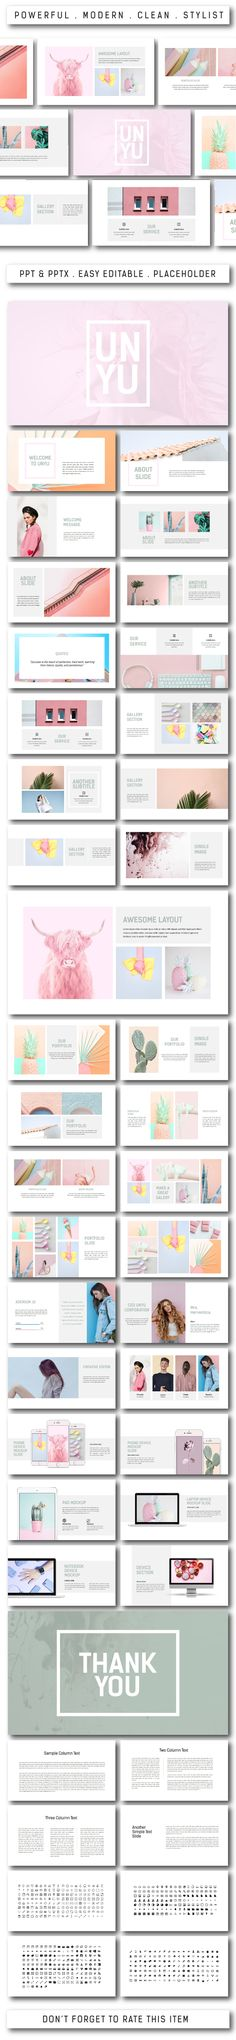 Unyu Multipurpose Powerpoint - #PowerPoint Templates #Presentation #Templates Download here: https://graphicriver.net/item/unyu-multipurpose-powerpoint/20432402?ref=alena994